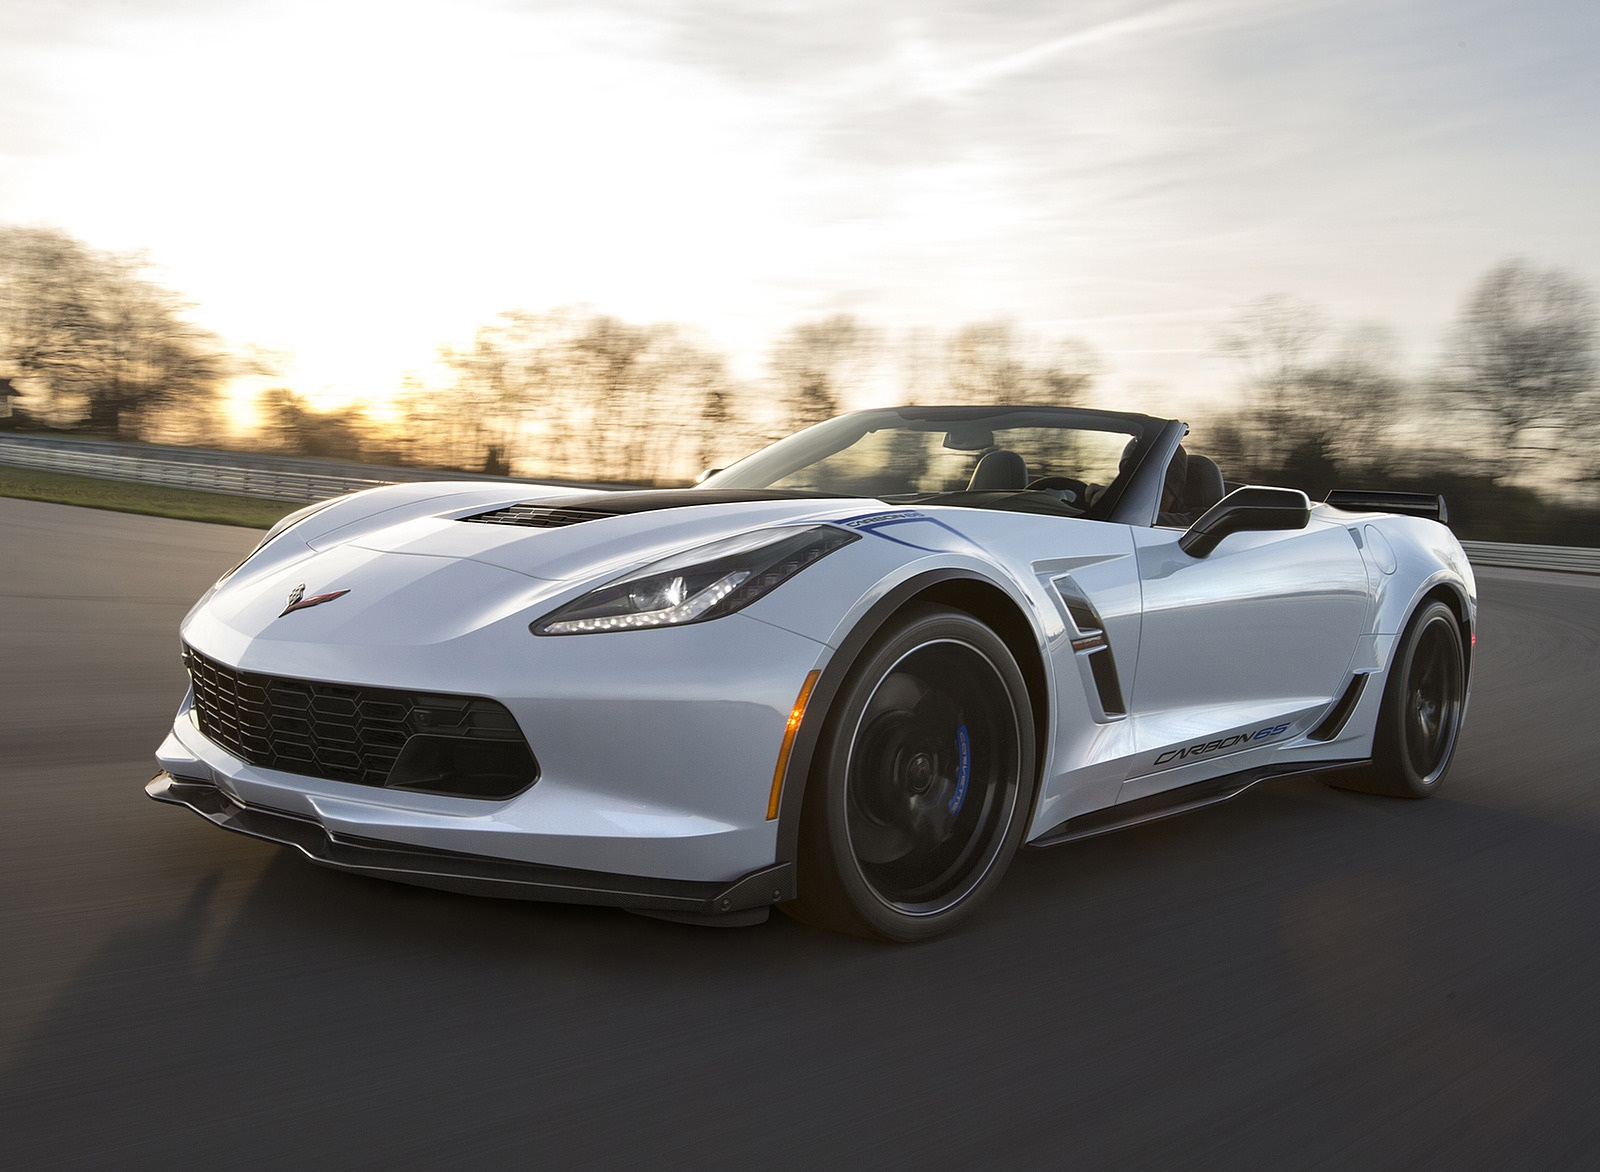 2018 Chevrolet Corvette Carbon 65 Edition Grand Sport 3LT Convertible Front Three-Quarter Wallpapers (2)